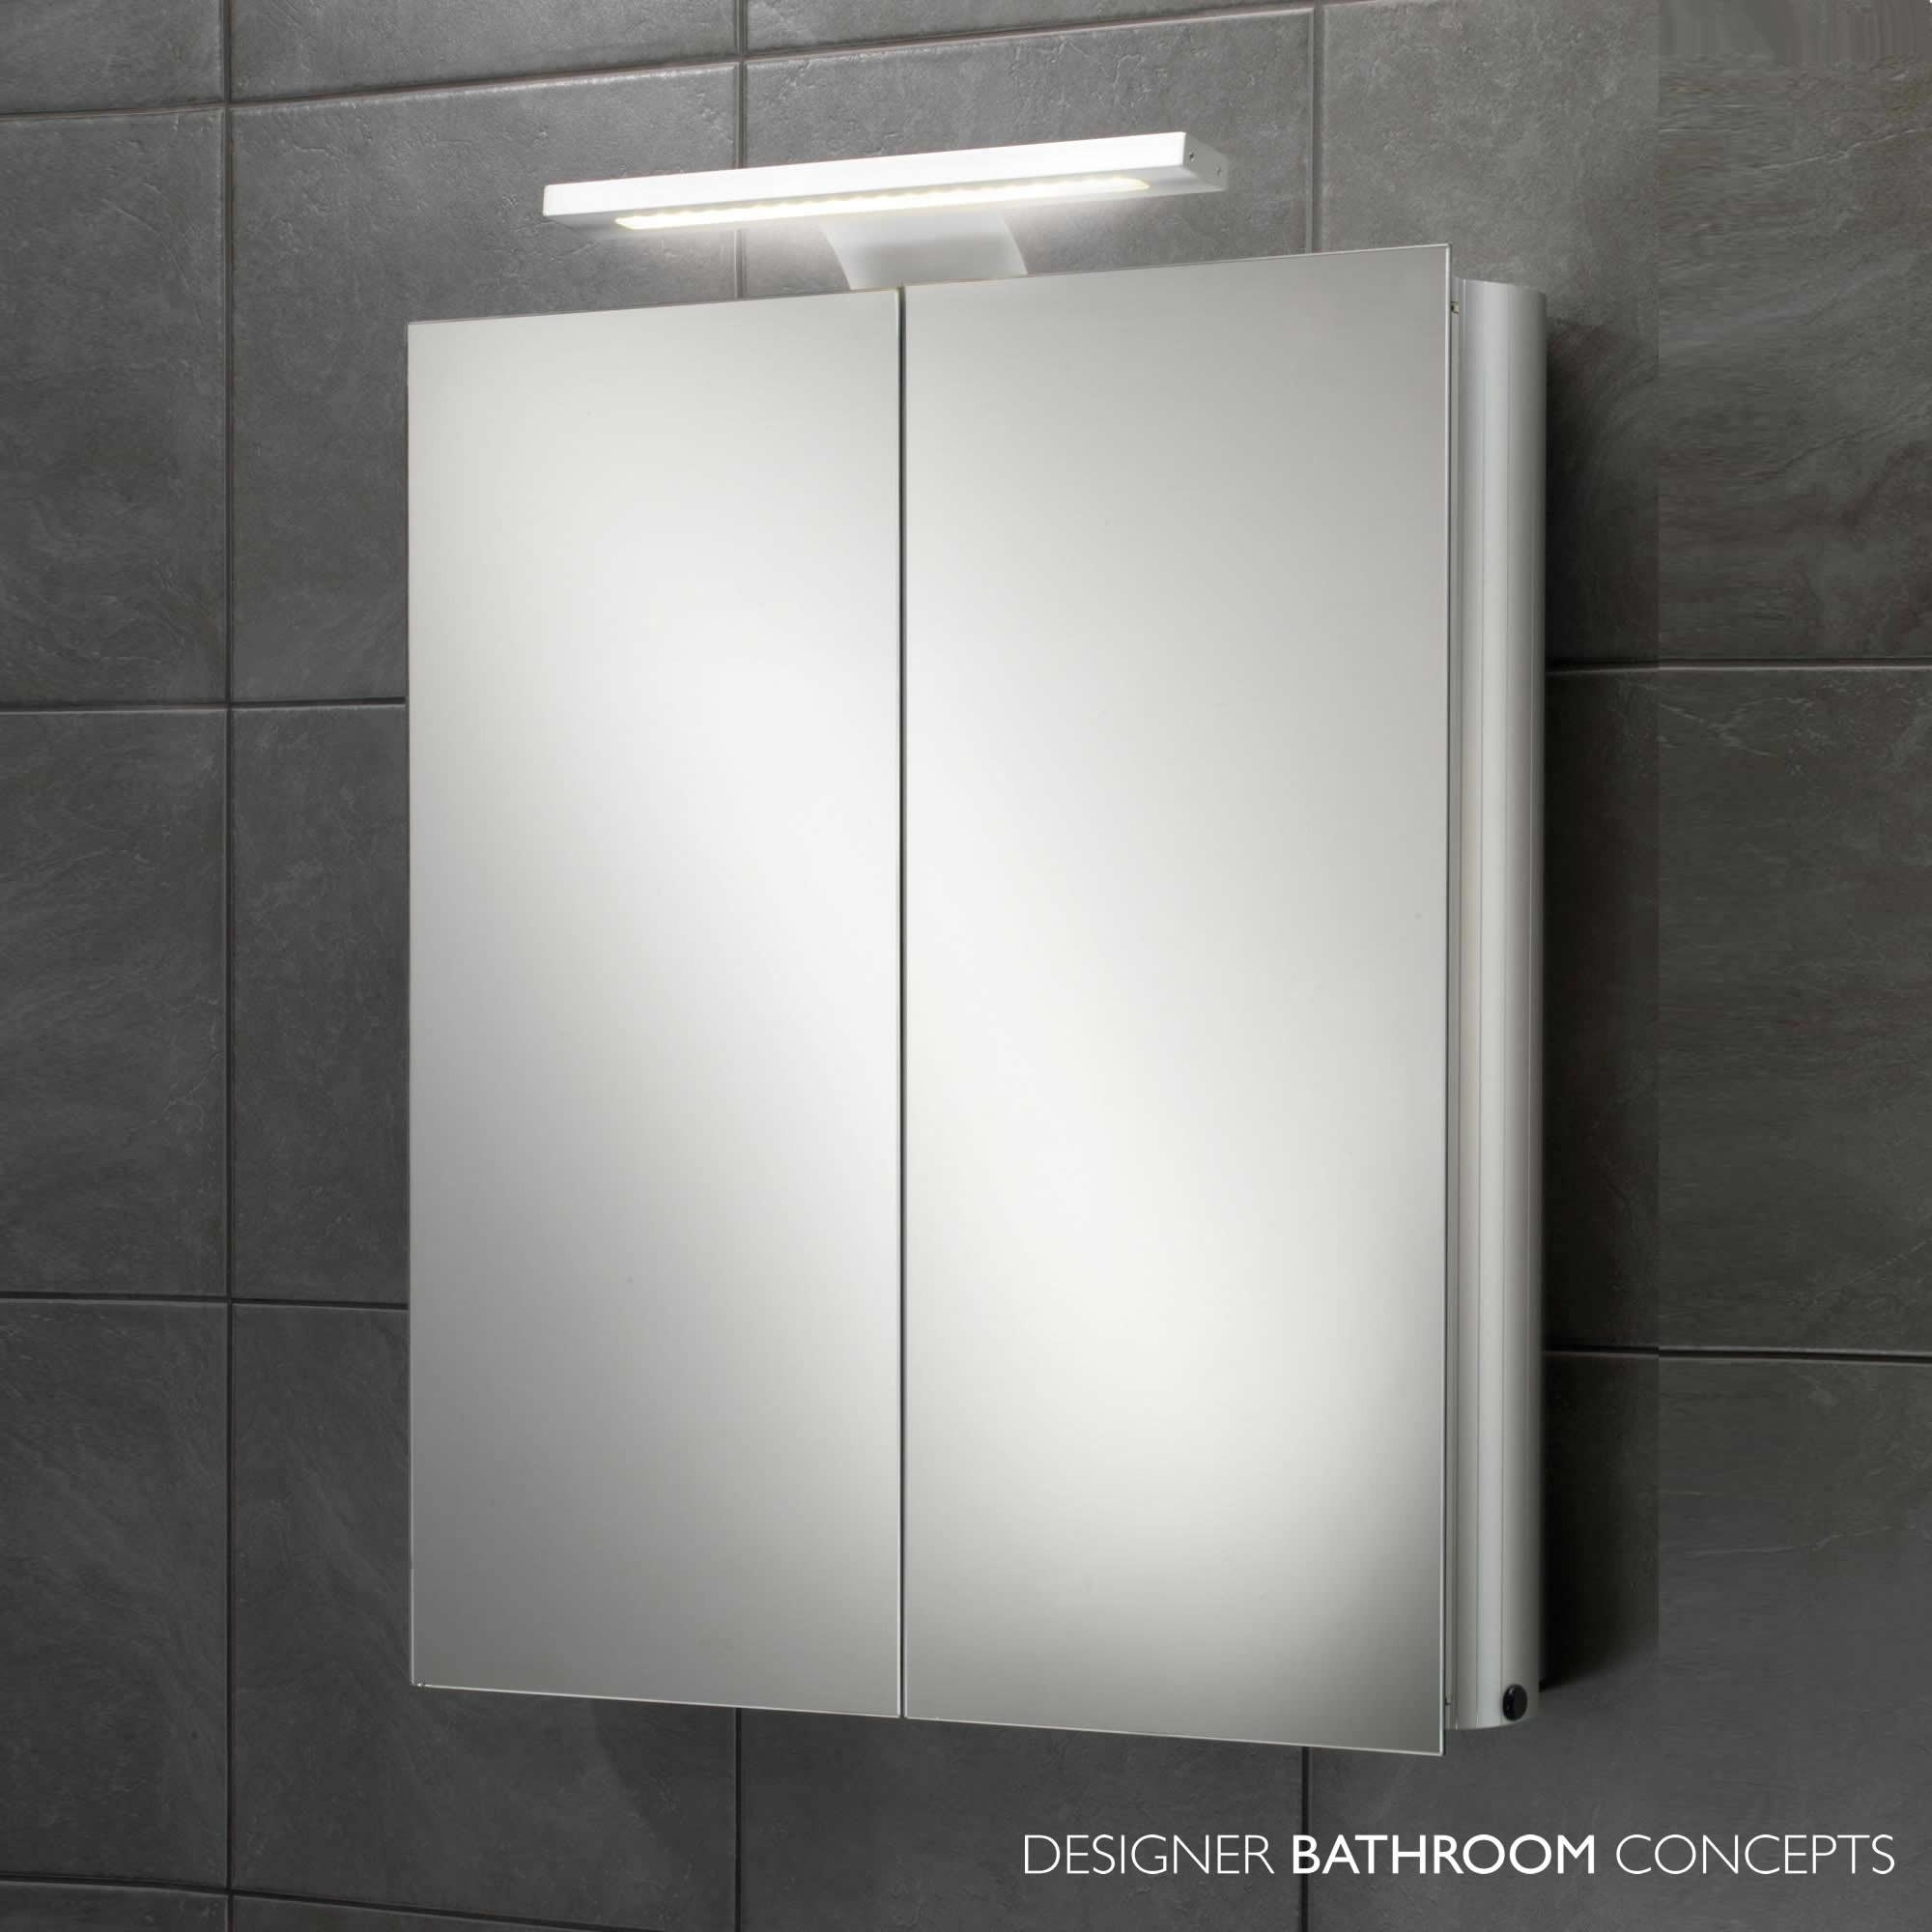 Wondrous Design Ideas Bathroom Cabinet With Lights And Mirror Throughout Bathroom Lights And Mirrors (Image 20 of 20)